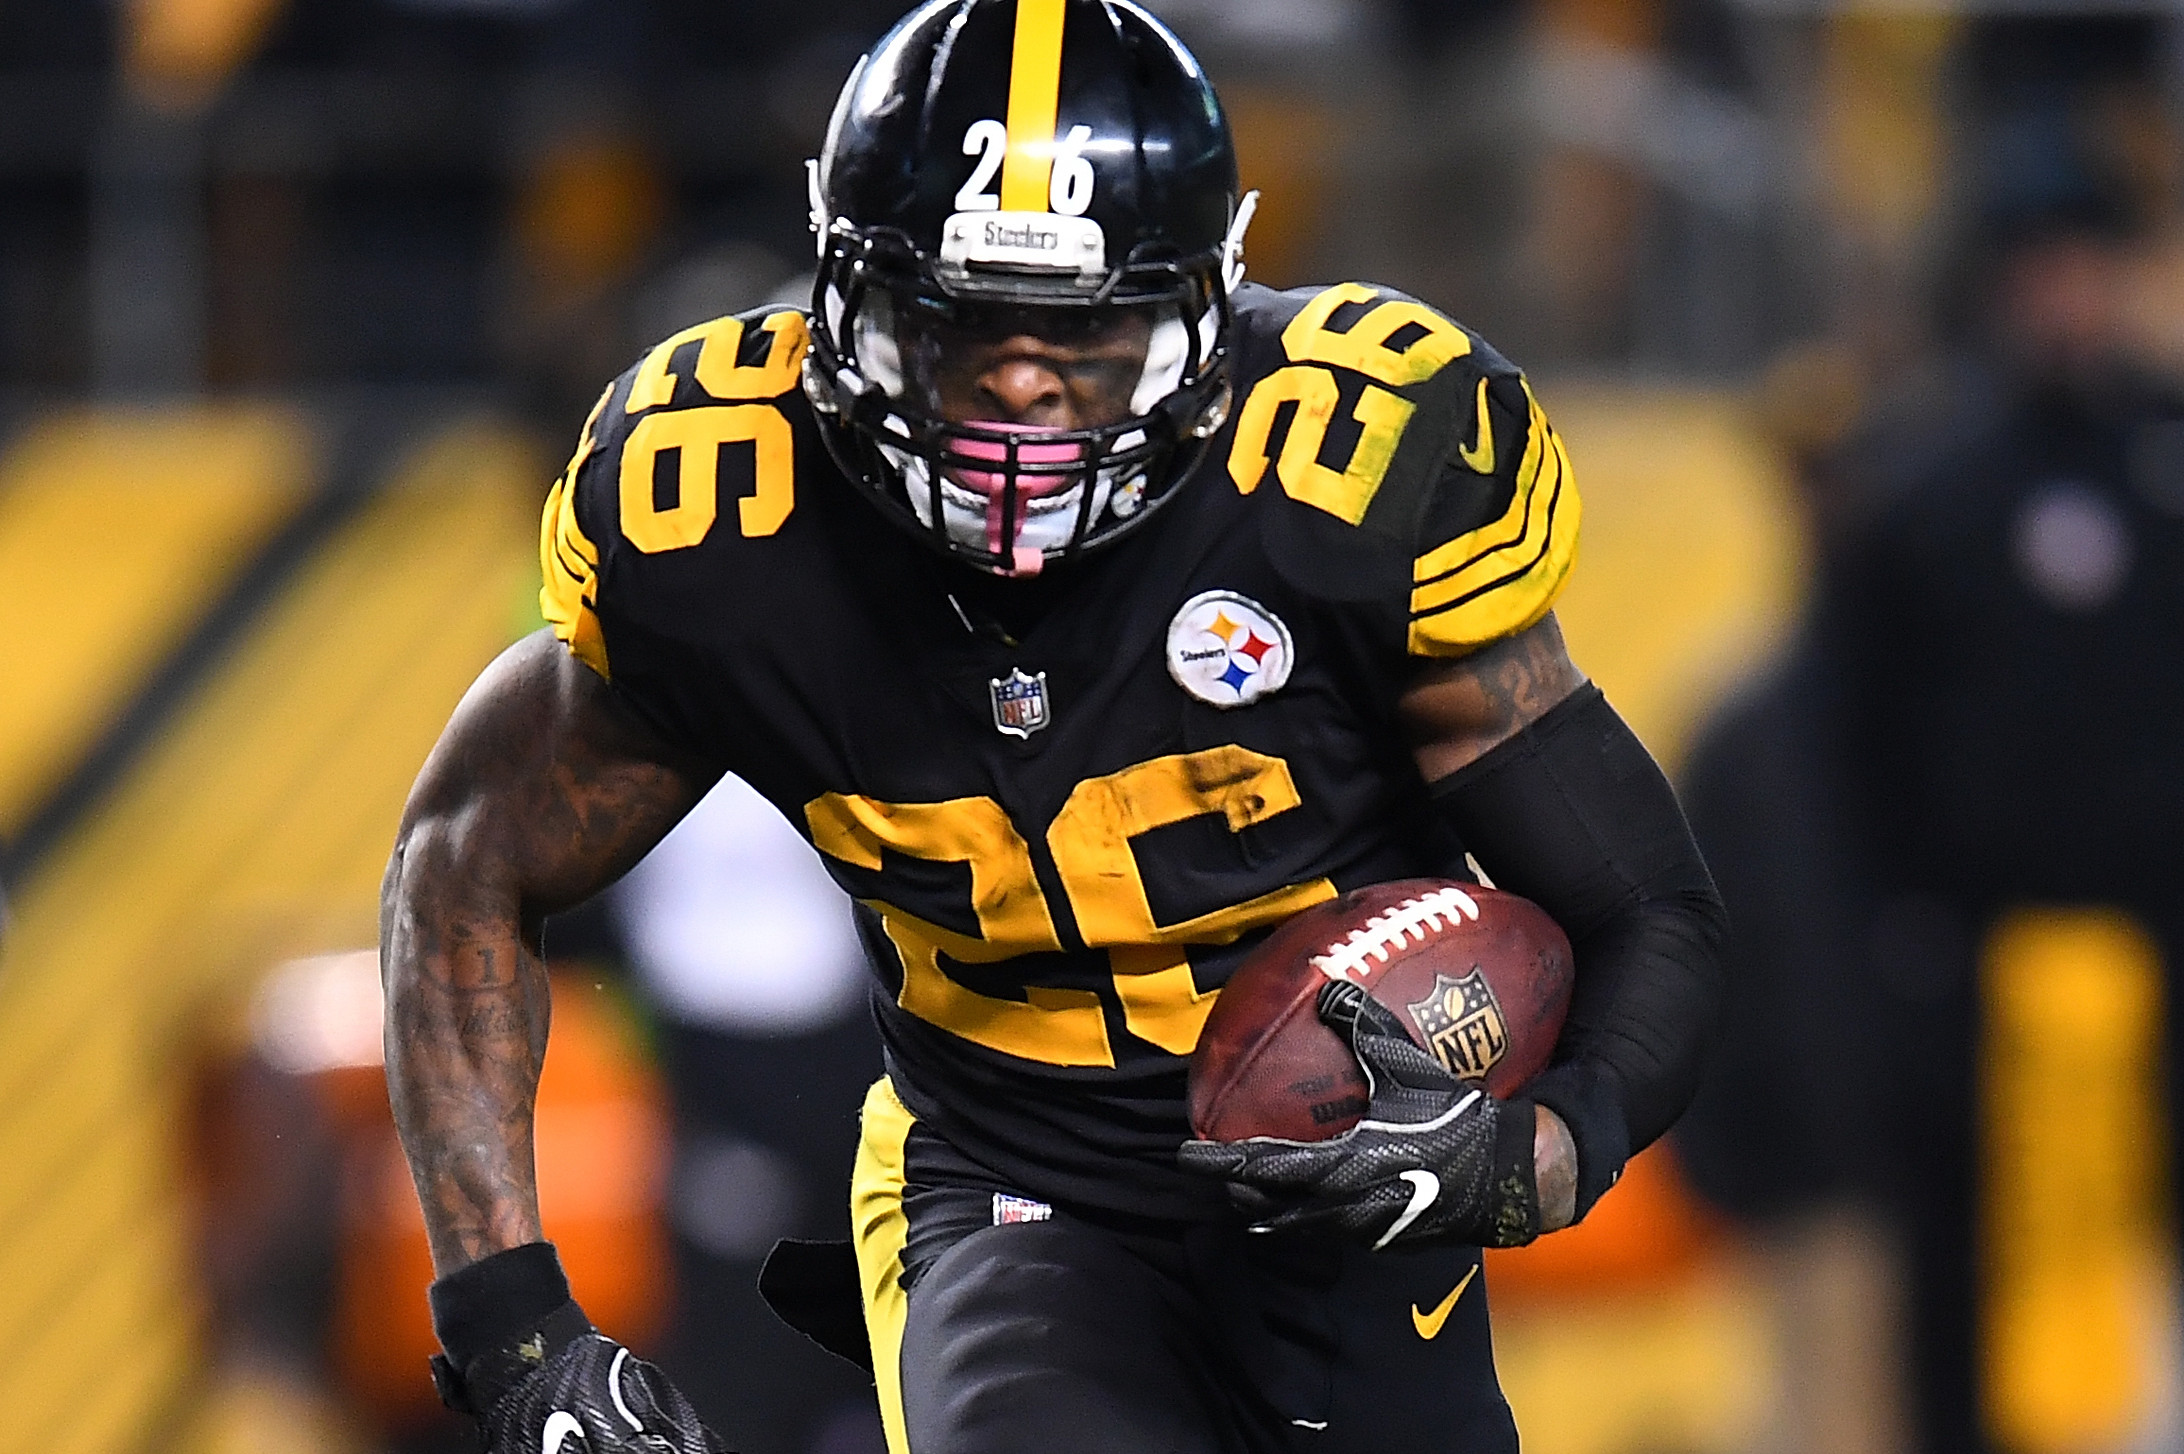 Color rush Le'veon is a good one